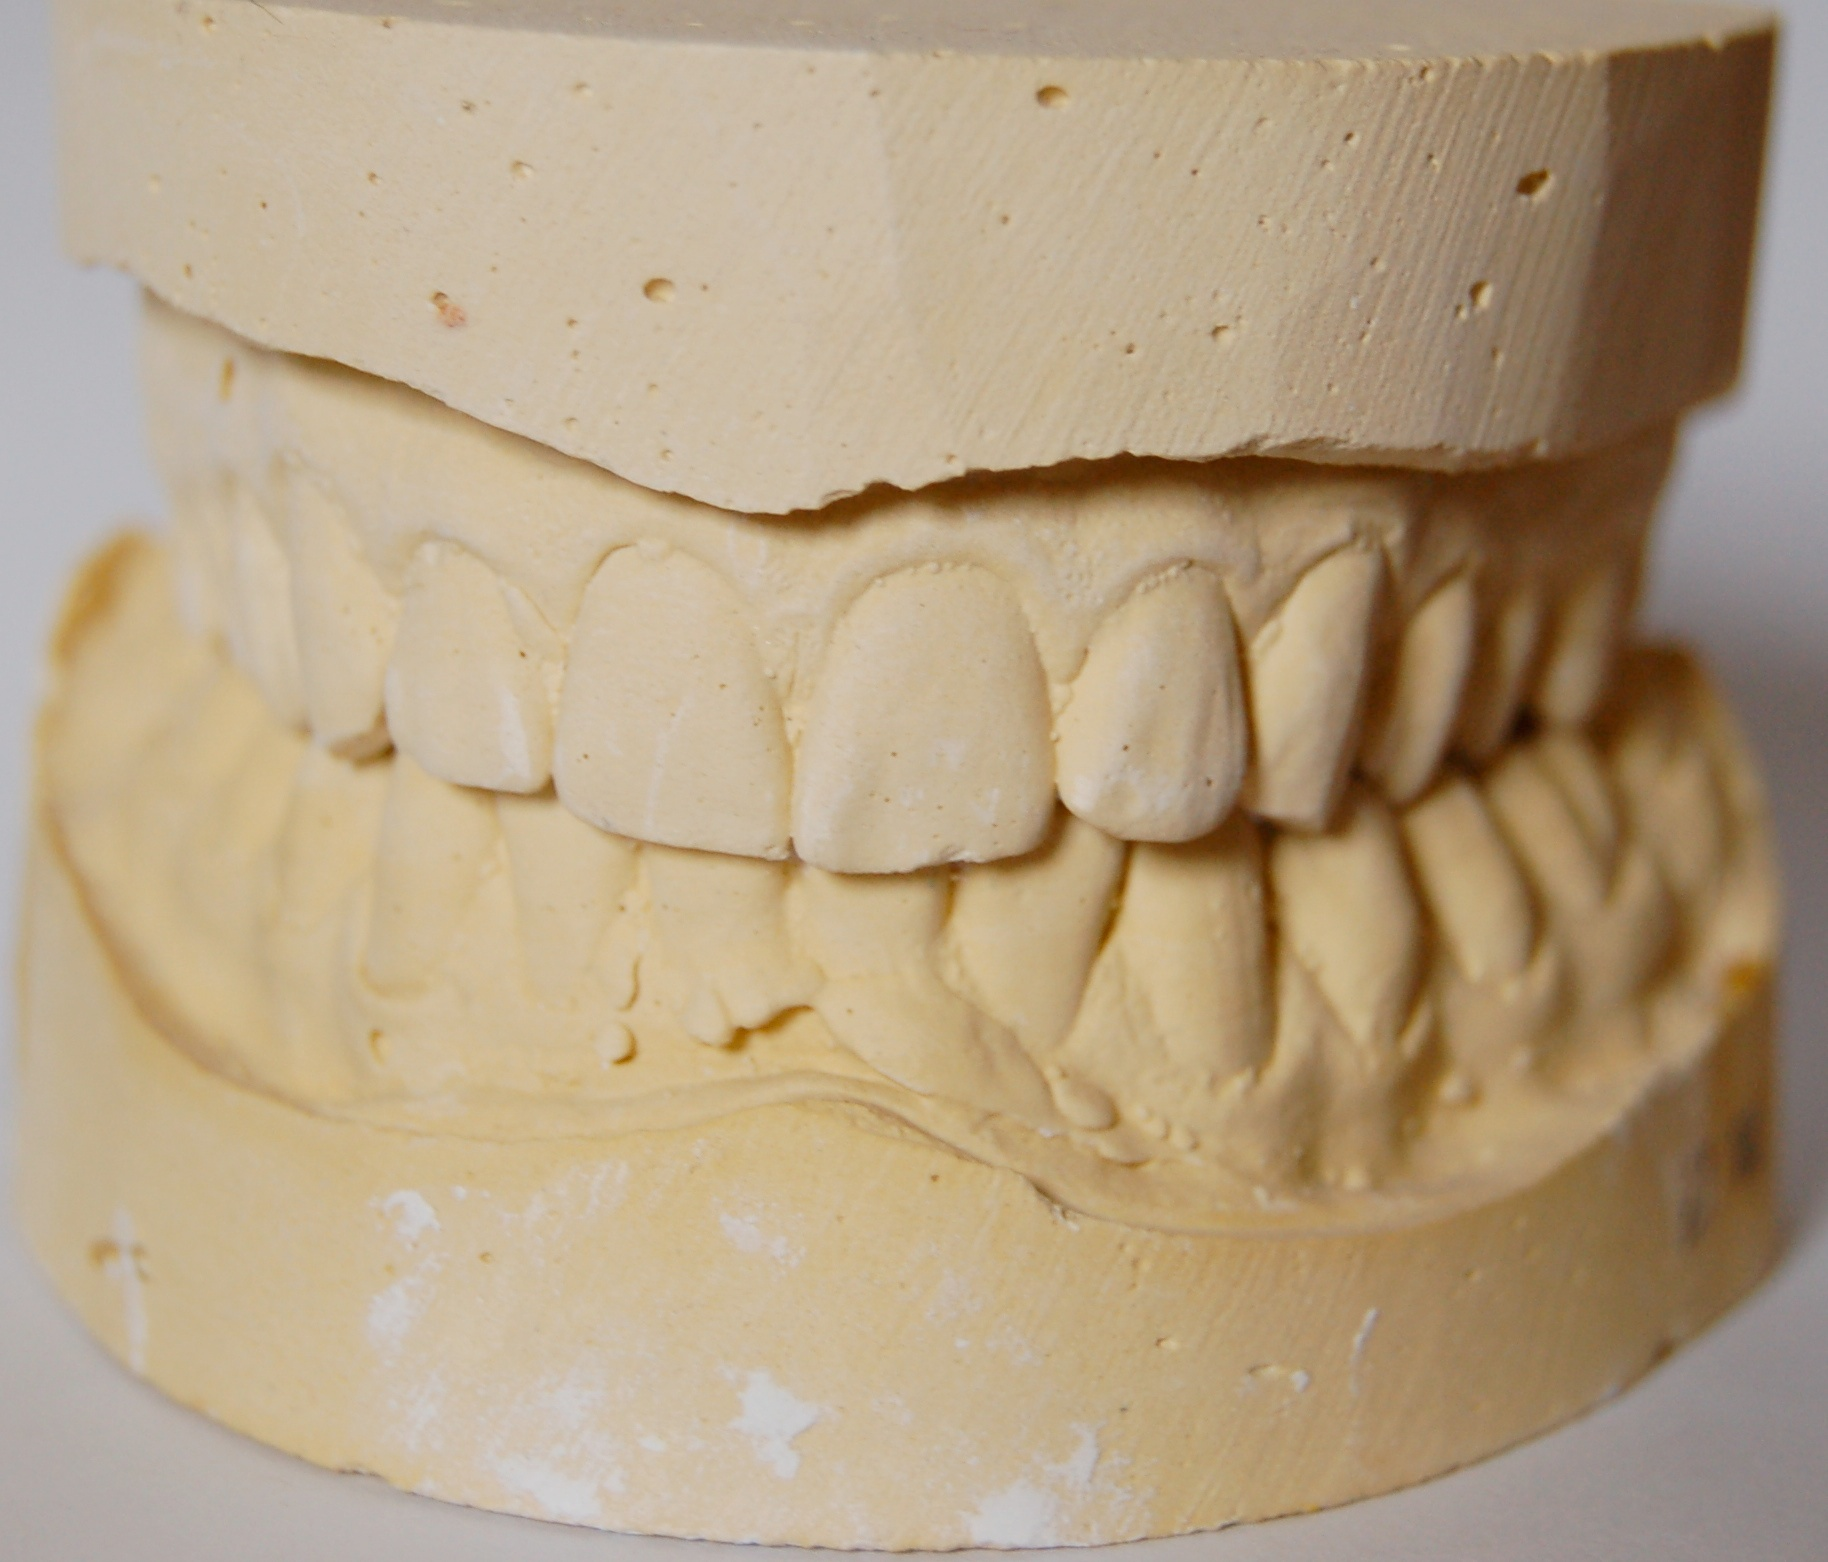 Tooth mold - Zirconia crowns - White River Dental - Columbus, Indiana, Dentist